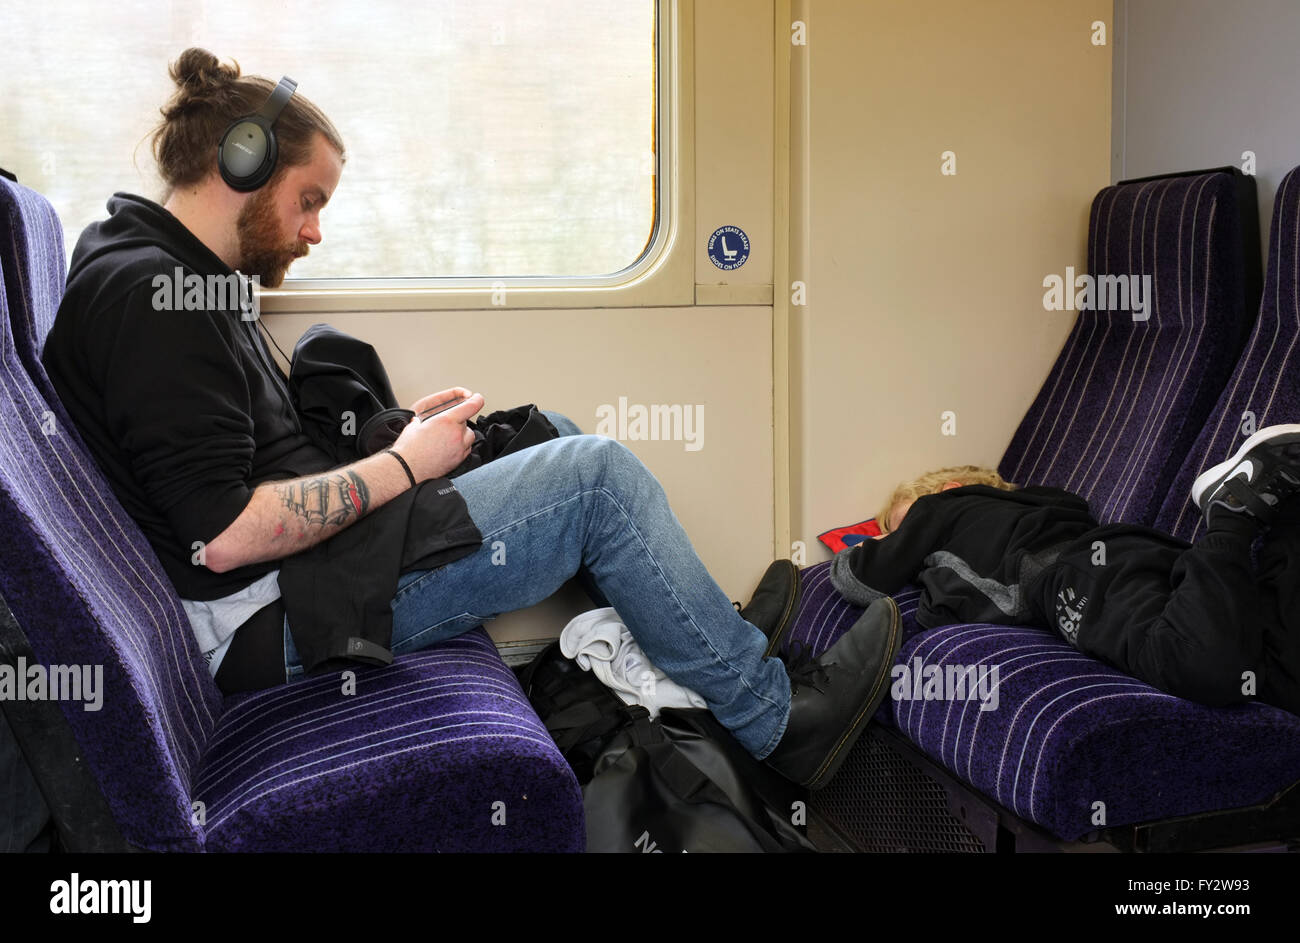 Male and child passengers travelling on a train with male setting a bad example by putting his feet on seats in - Stock Image